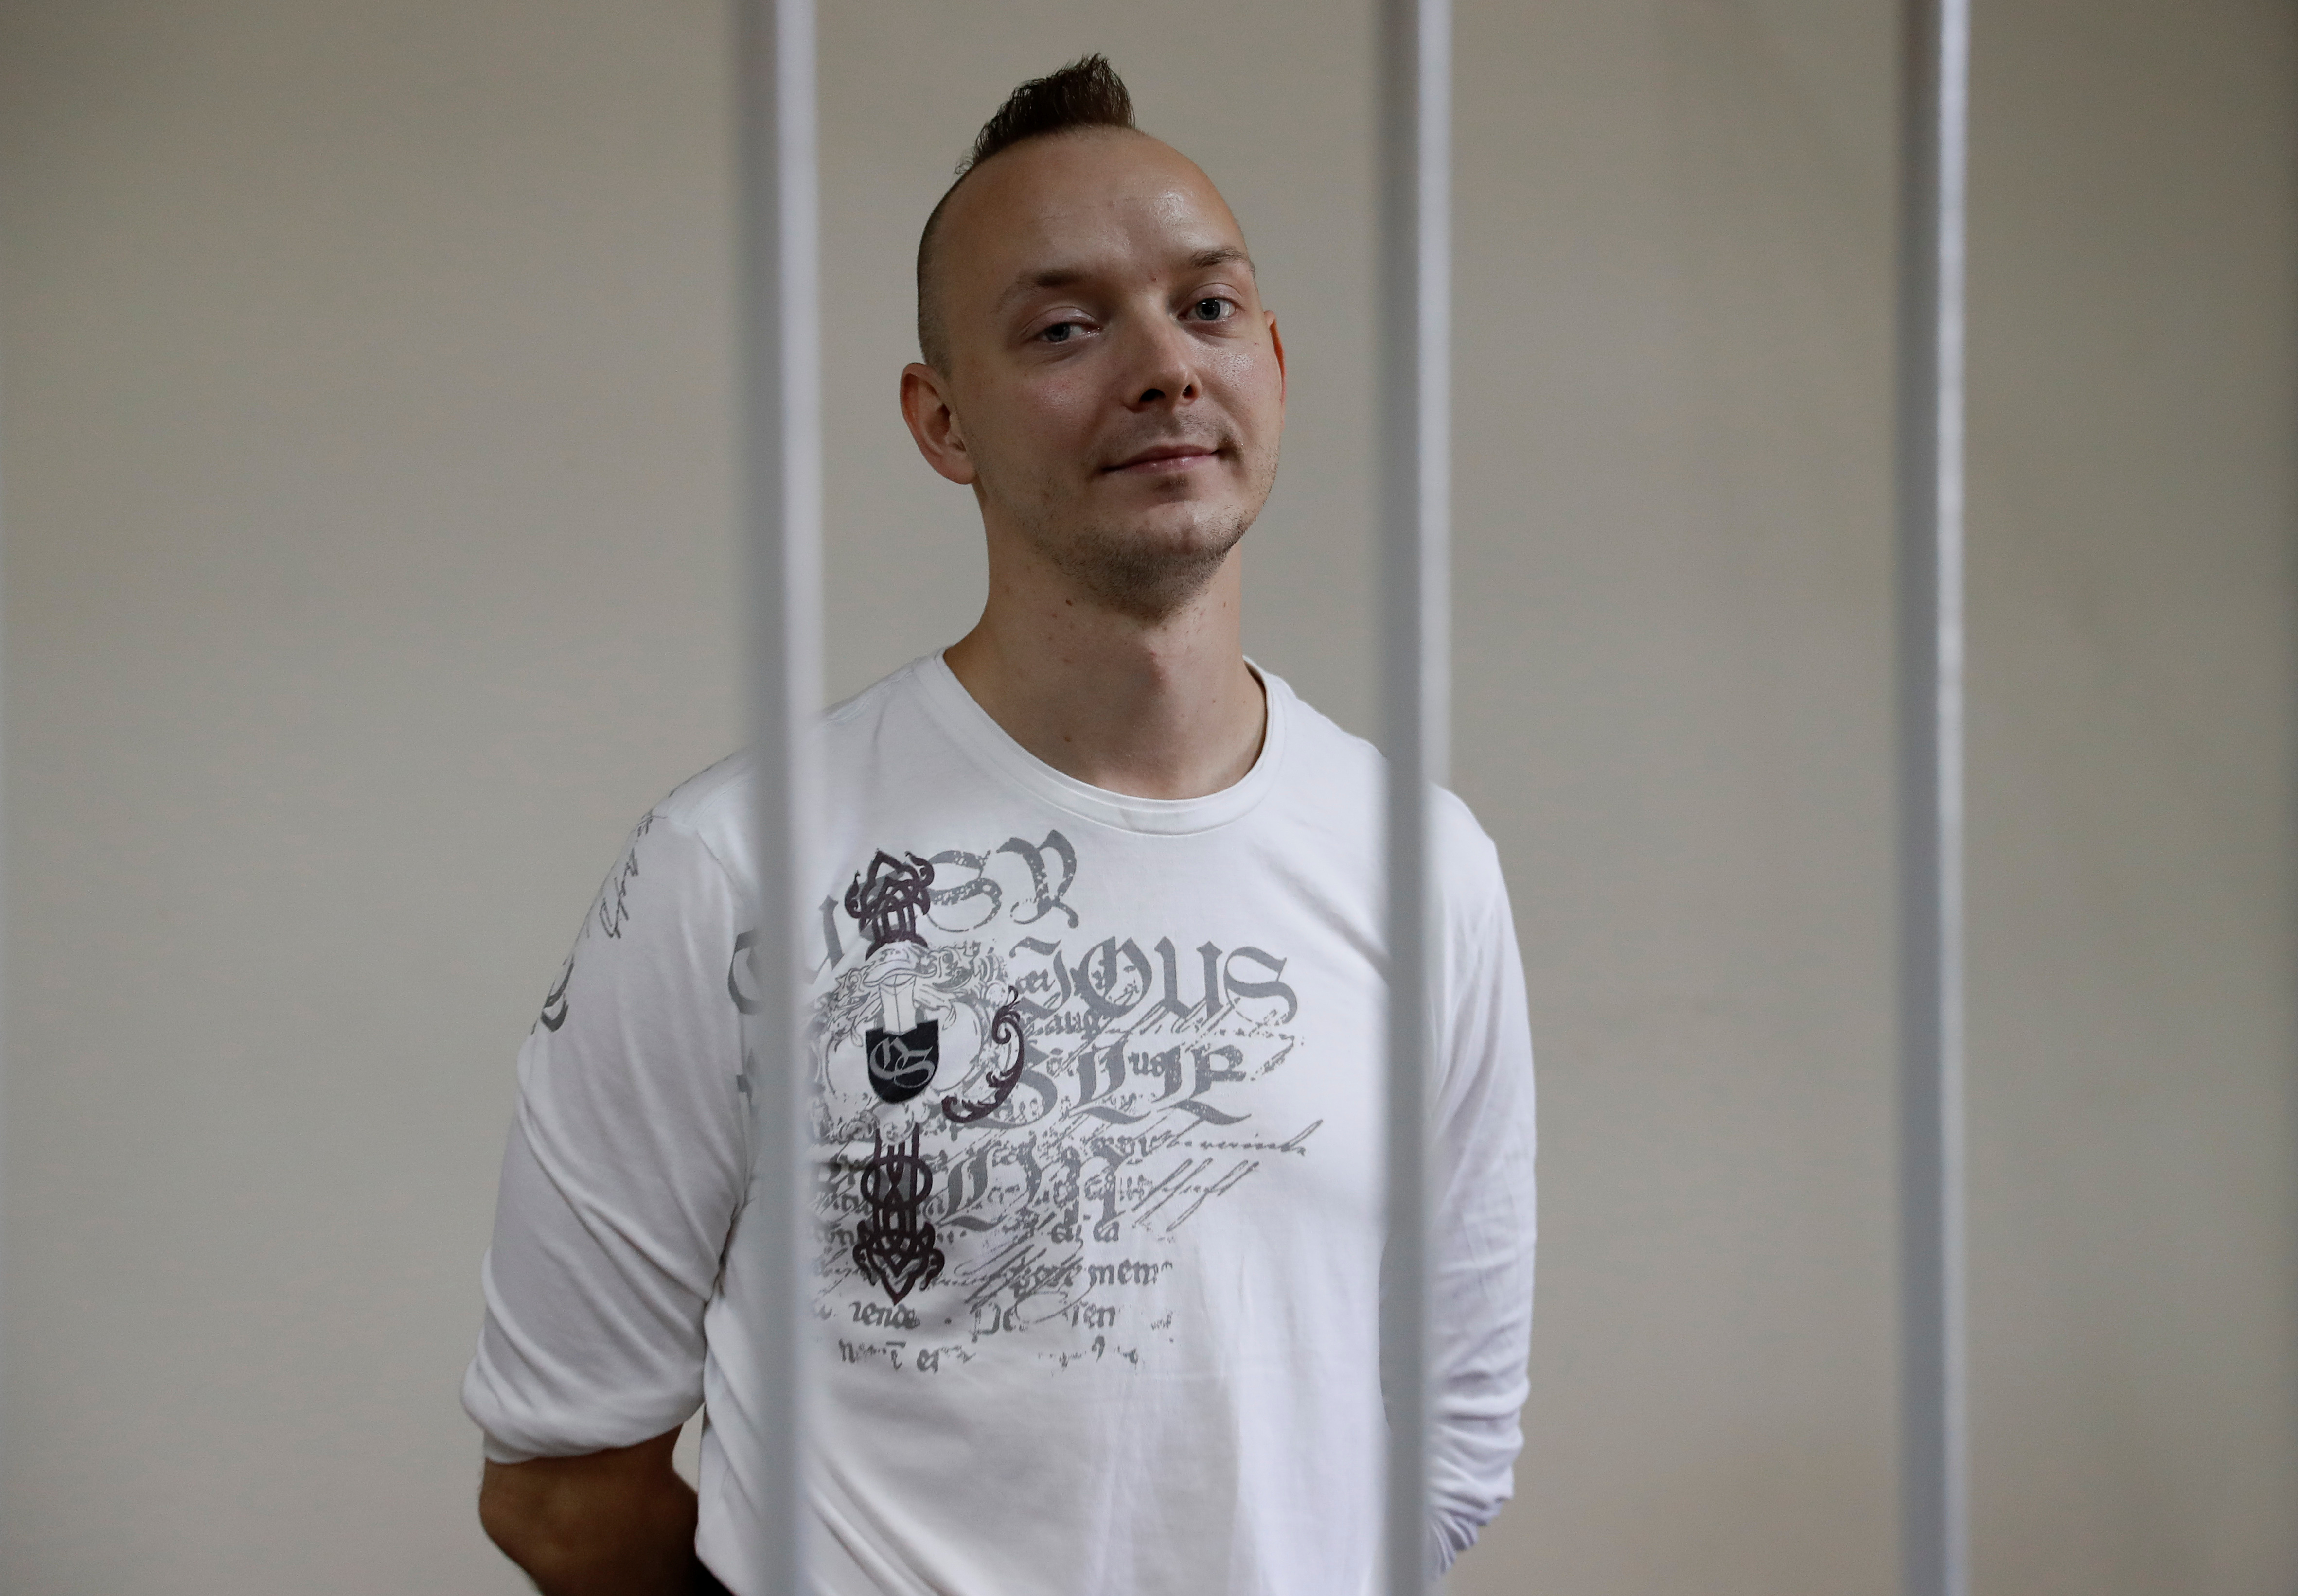 Ivan Safronov, a former journalist and an aide to the head of Russia